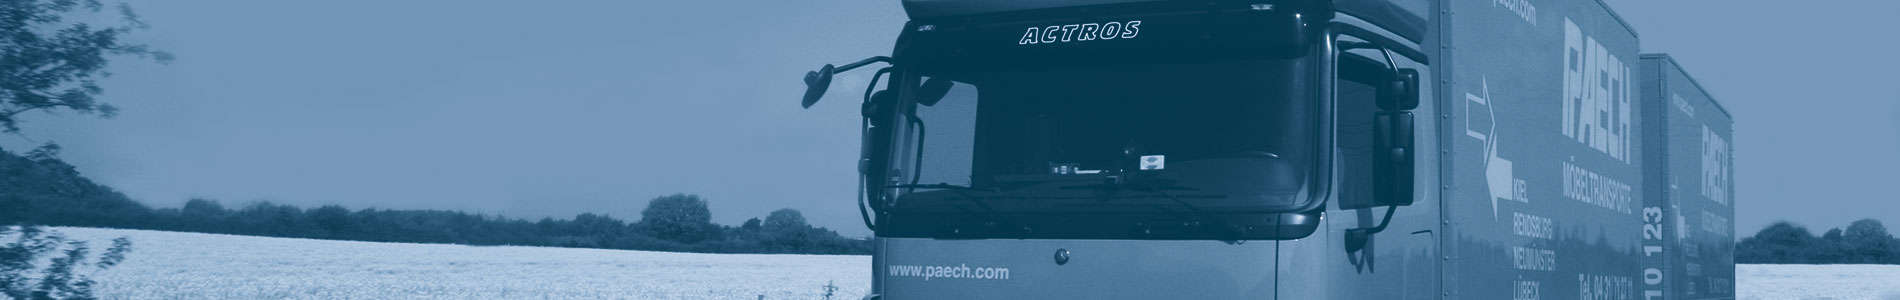 Ute Paech GmbH & Co. KG - Home Removals